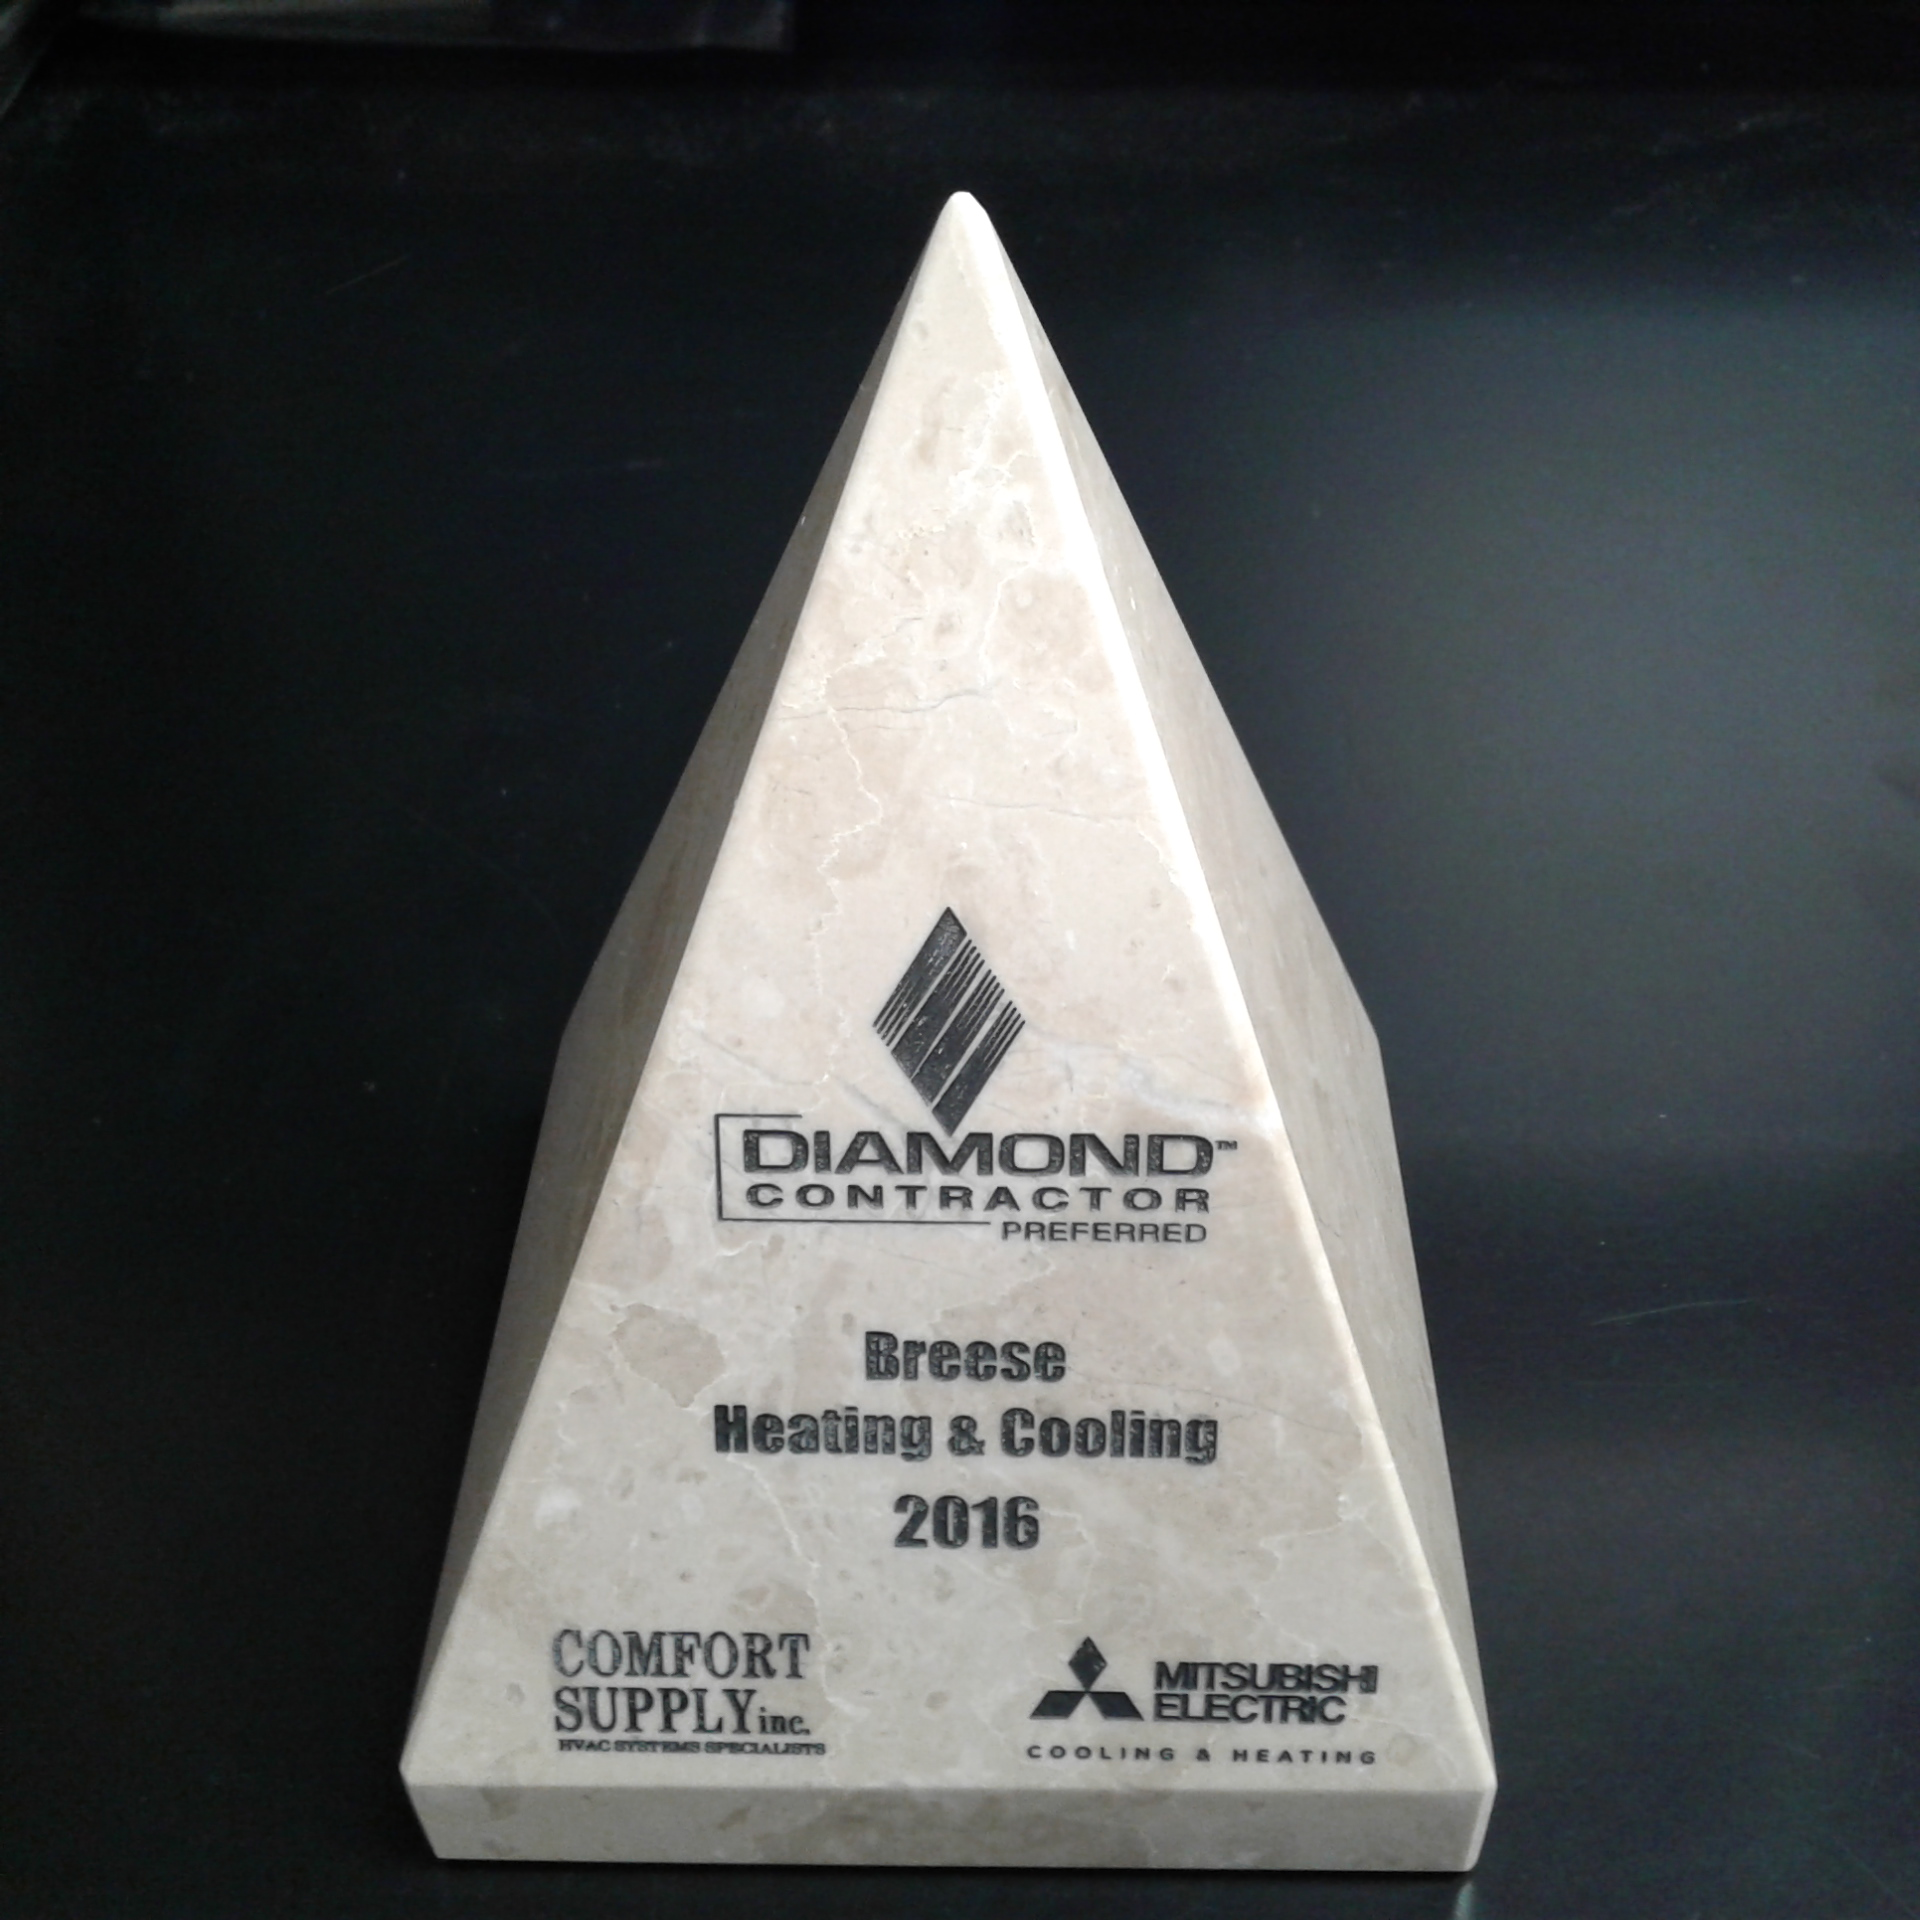 Preferred Diamond Contractor Award